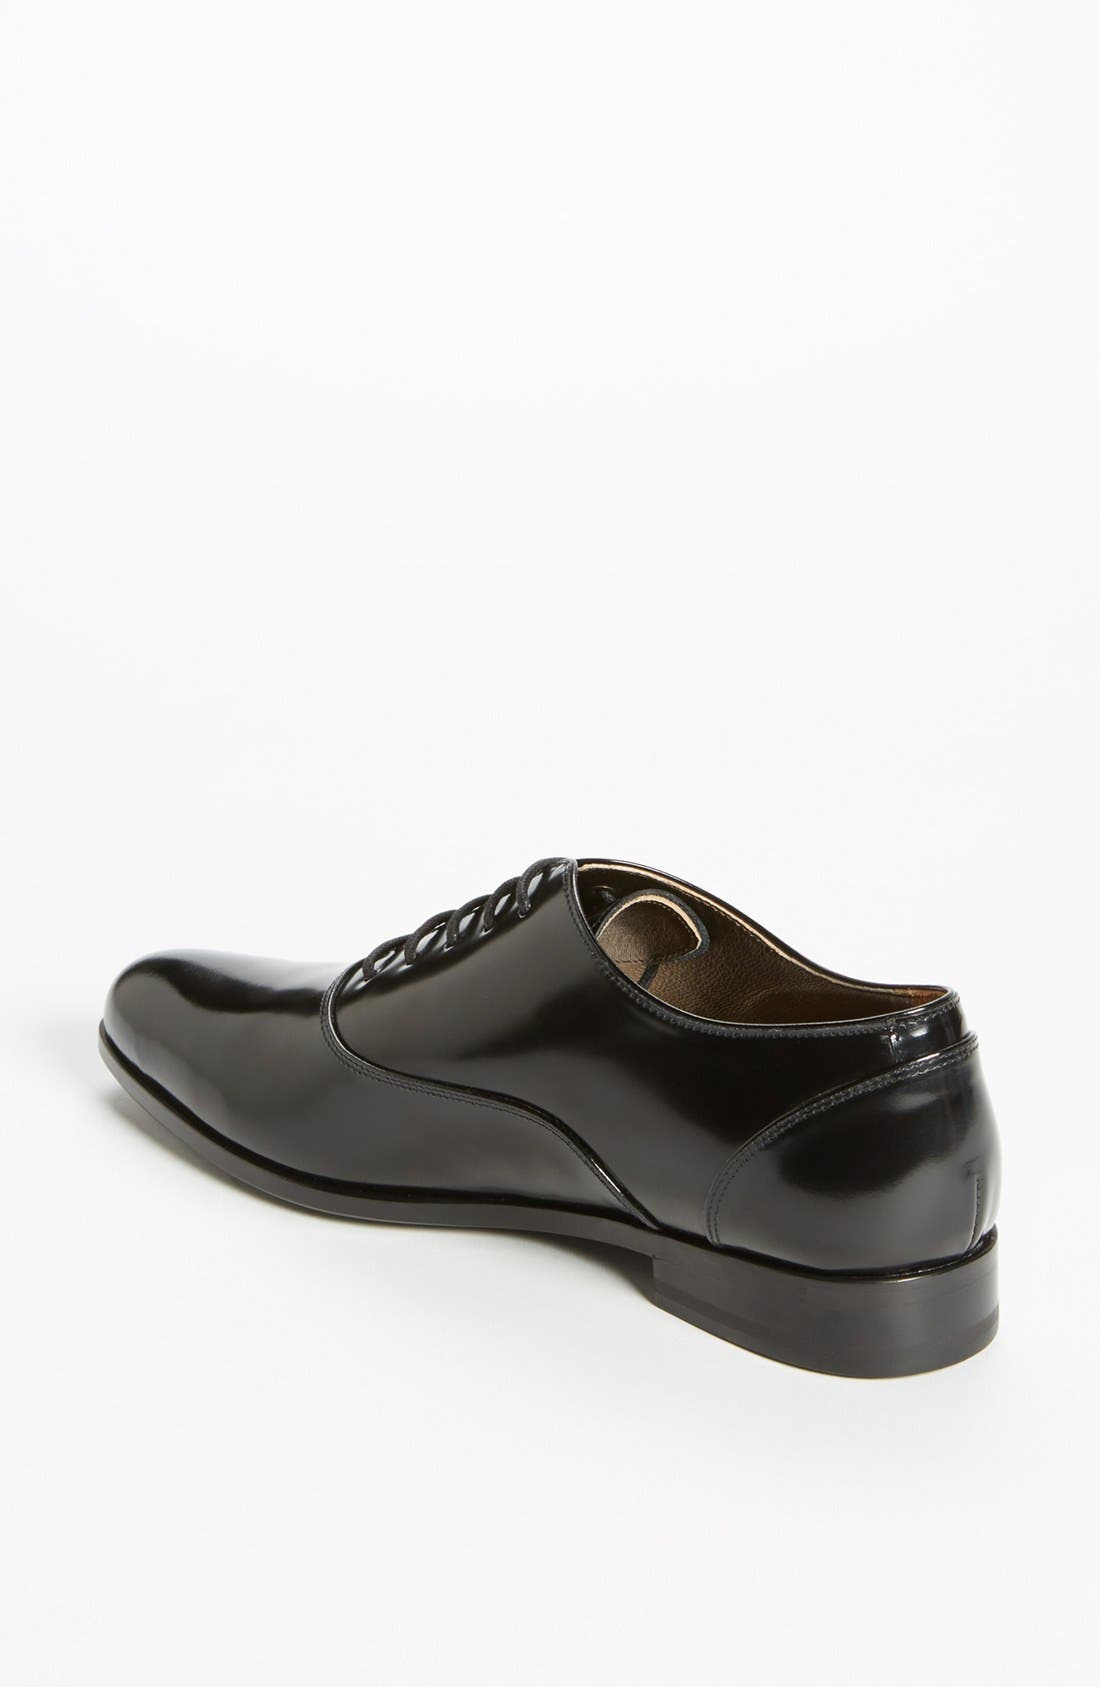 Alternate Image 2  - Lanvin 'Boyish' Oxford Flat